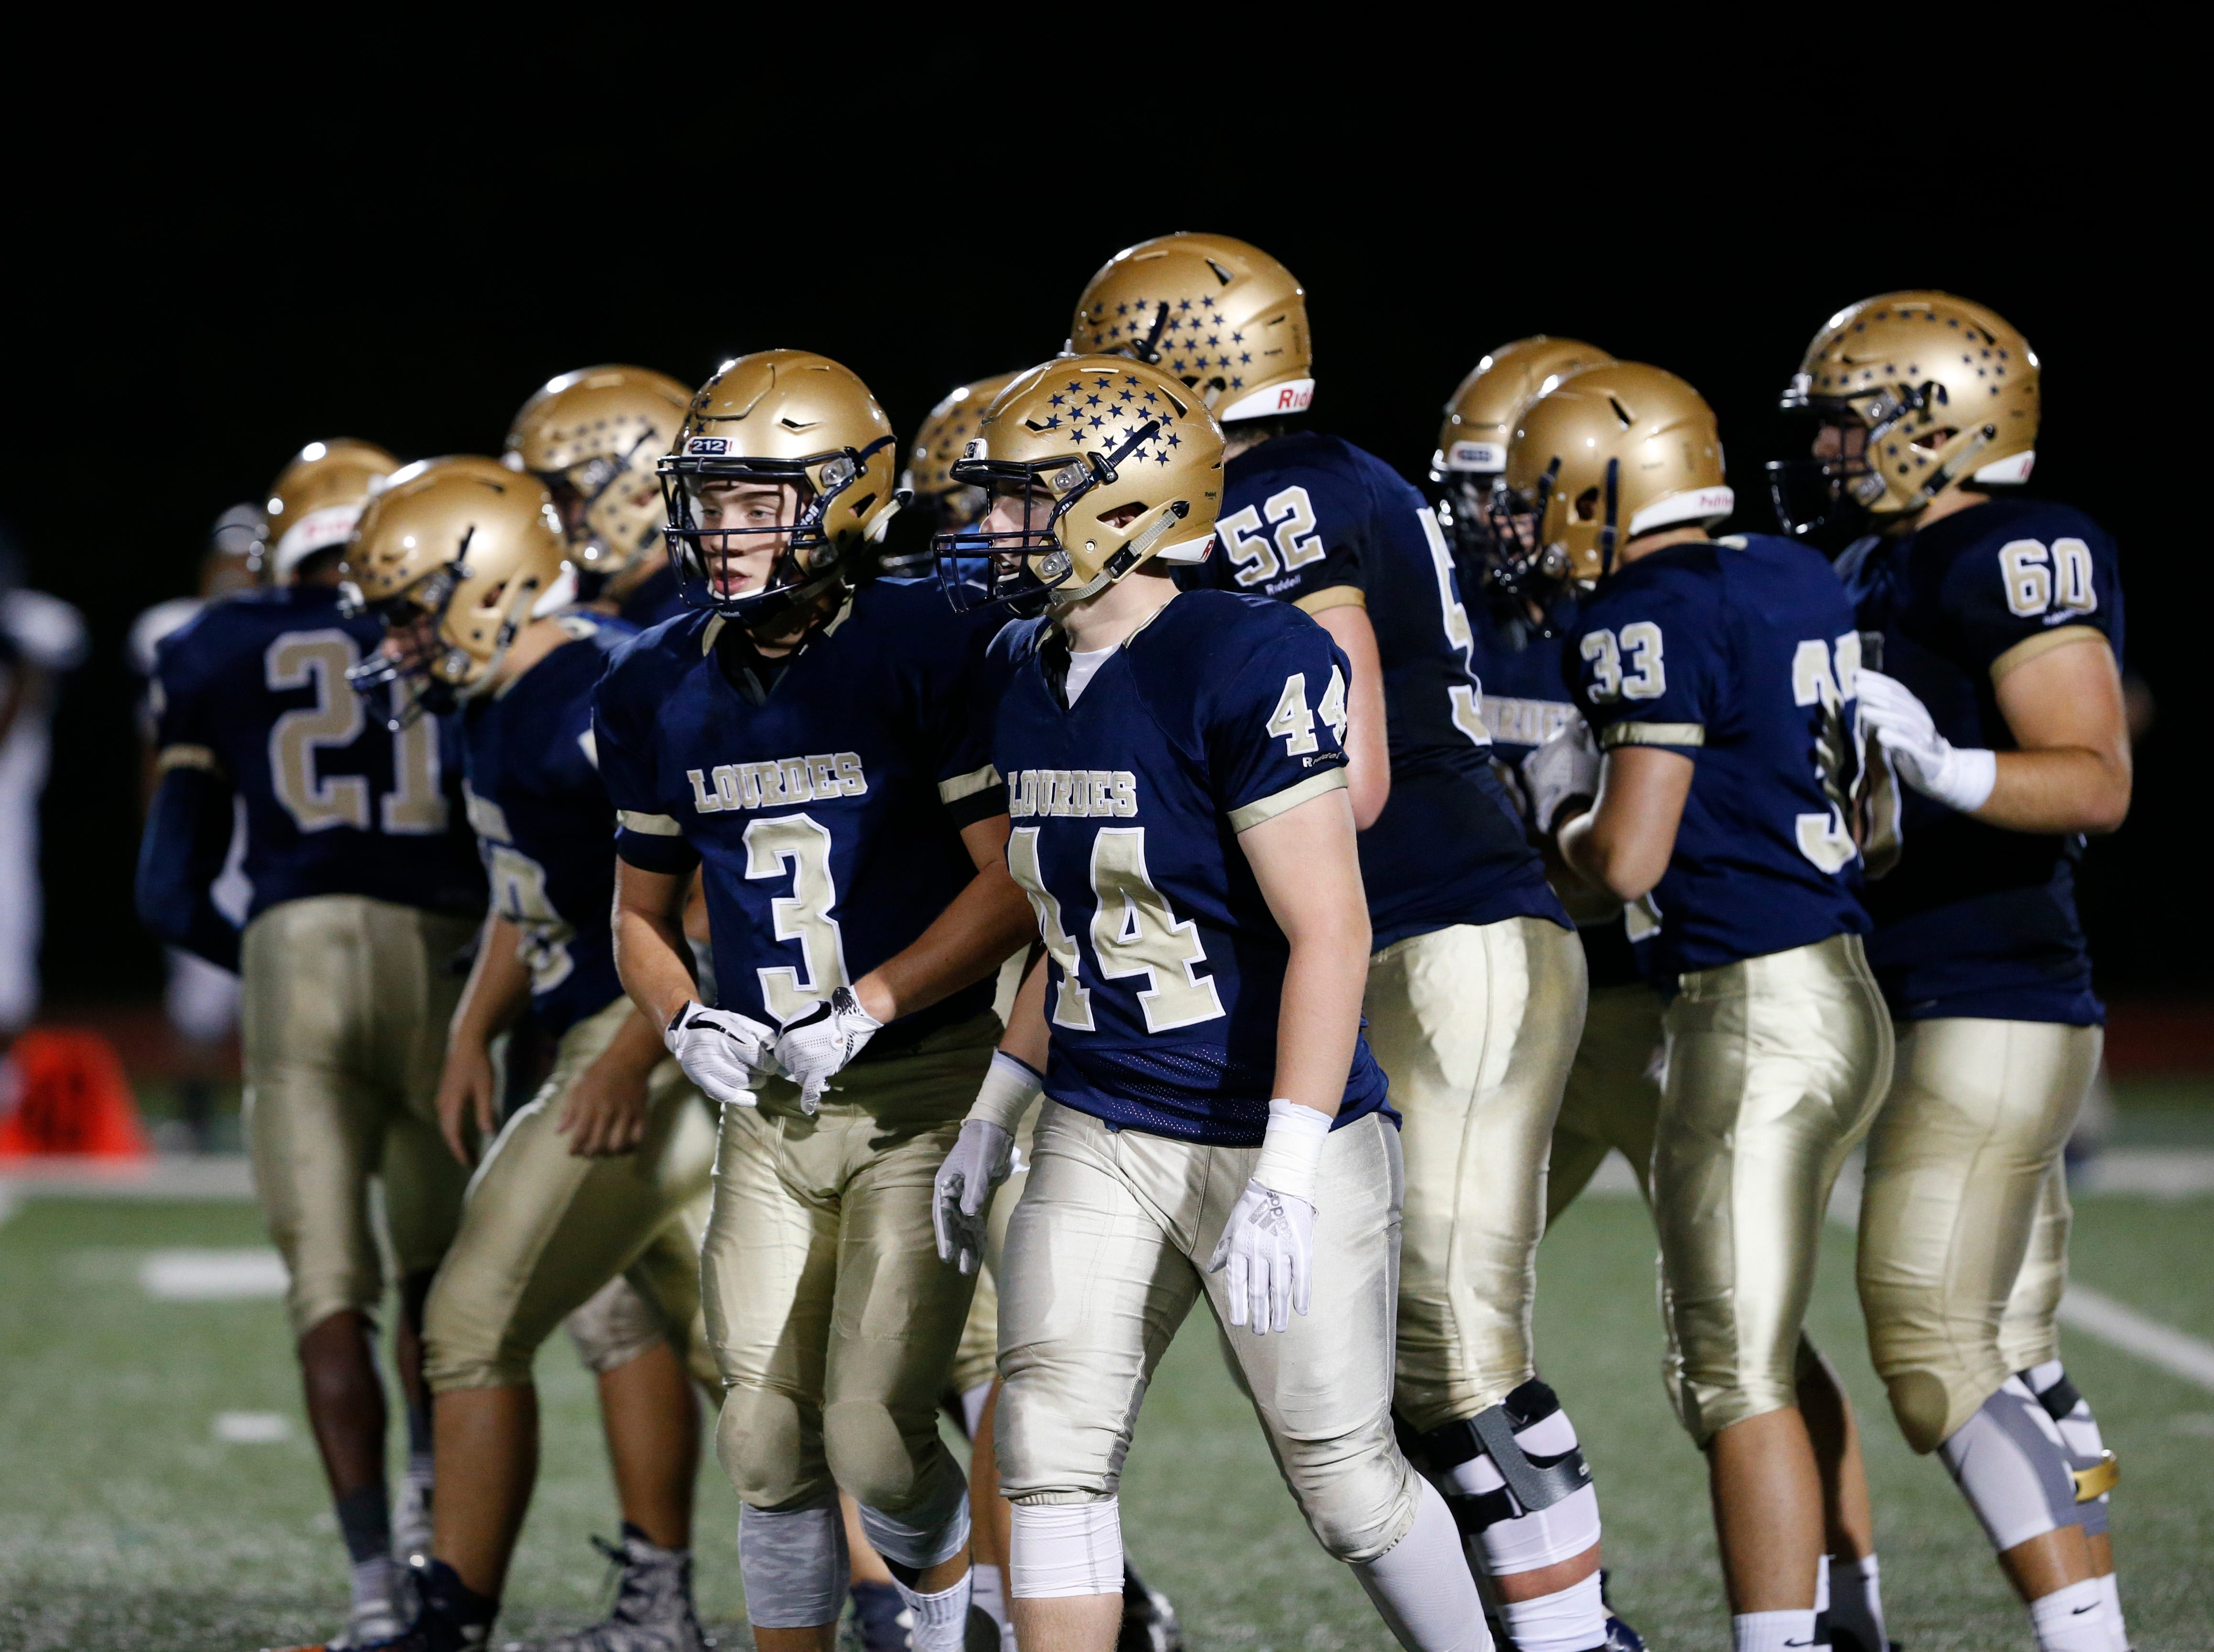 Action from Friday night's game between Our Lady of Lourdes and Walter Panas in the Town of Poughkeepsie on Sept. 21, 2018.